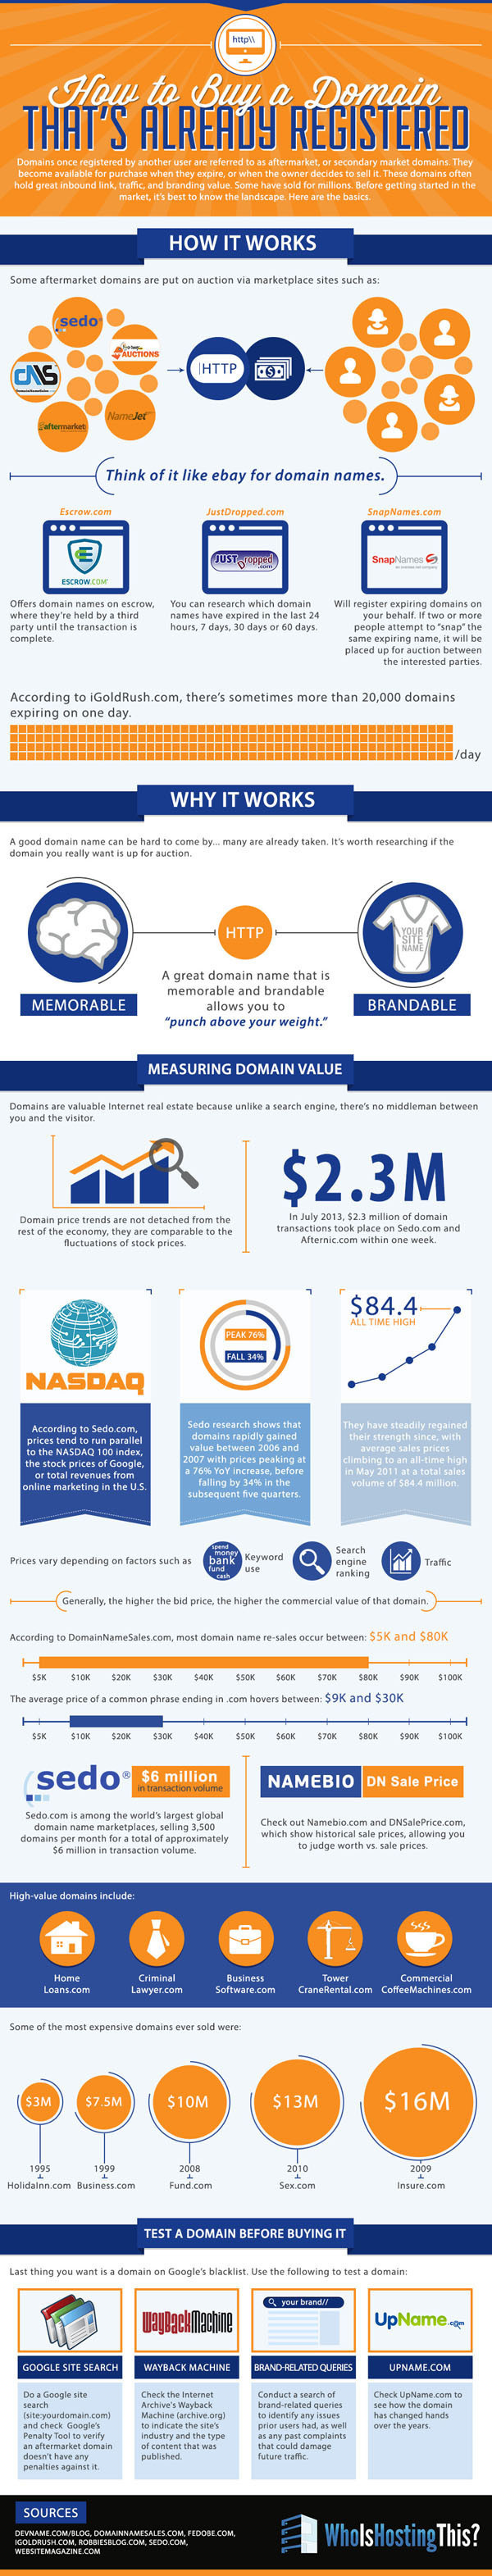 How to Buy a Domain Name [Infographic] #infographic #domain